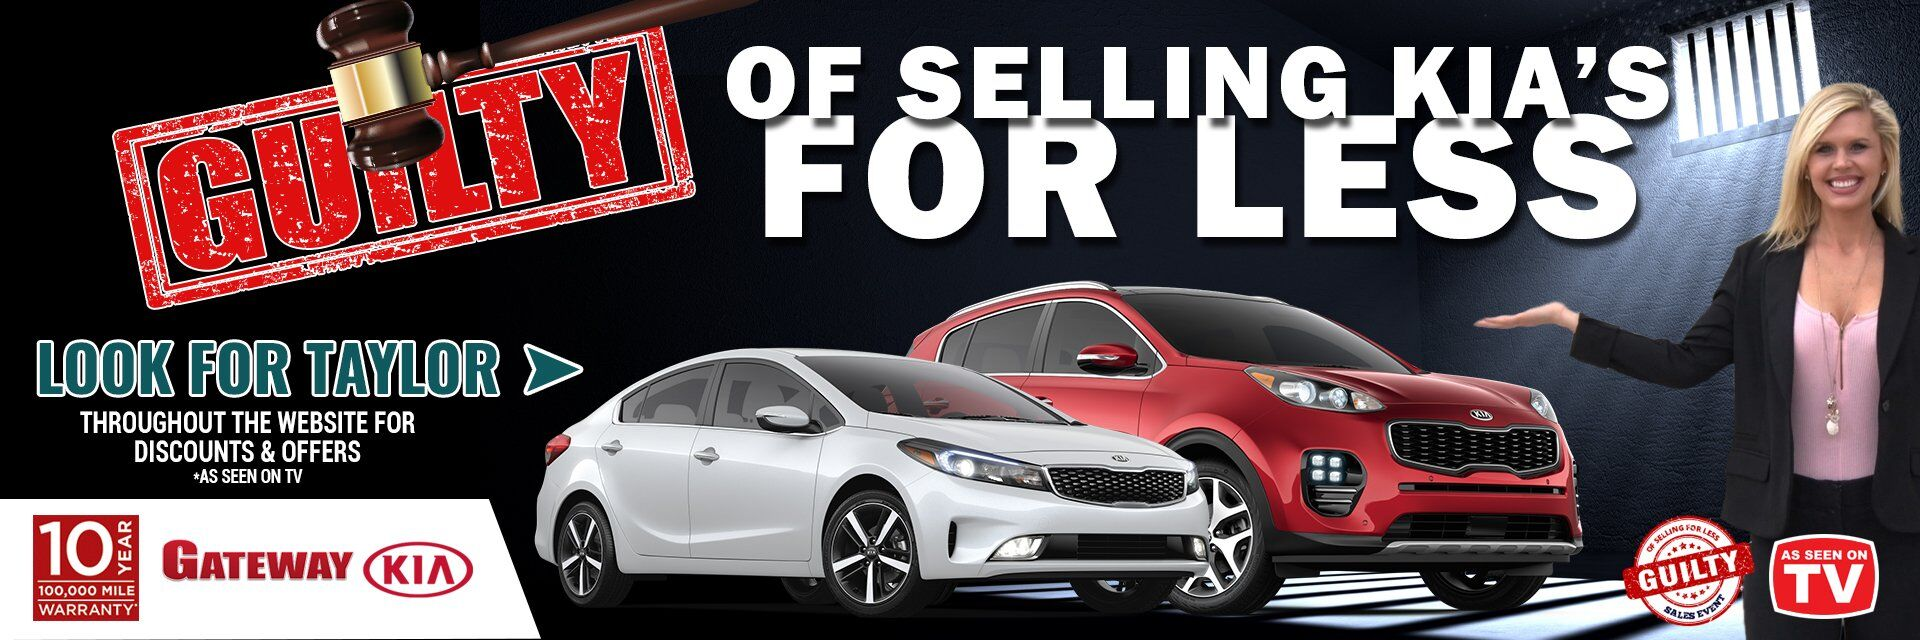 Guilty of Selling For Less Sales Event